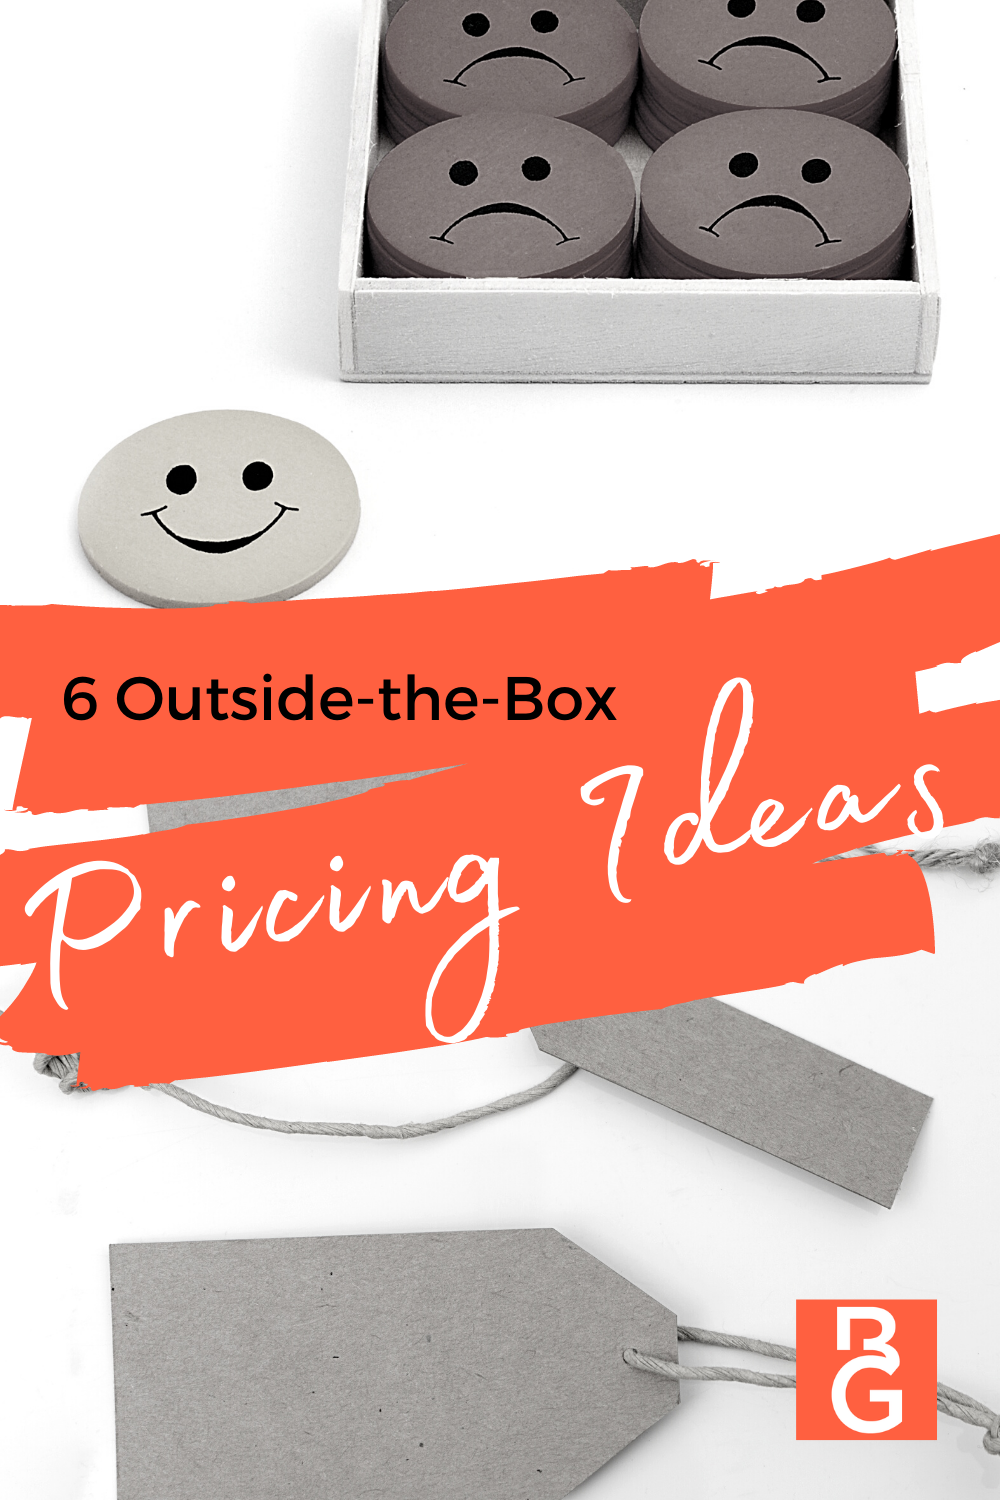 Four happy faces in a box with sad faces, one happy face outside of the box with a smiley face.